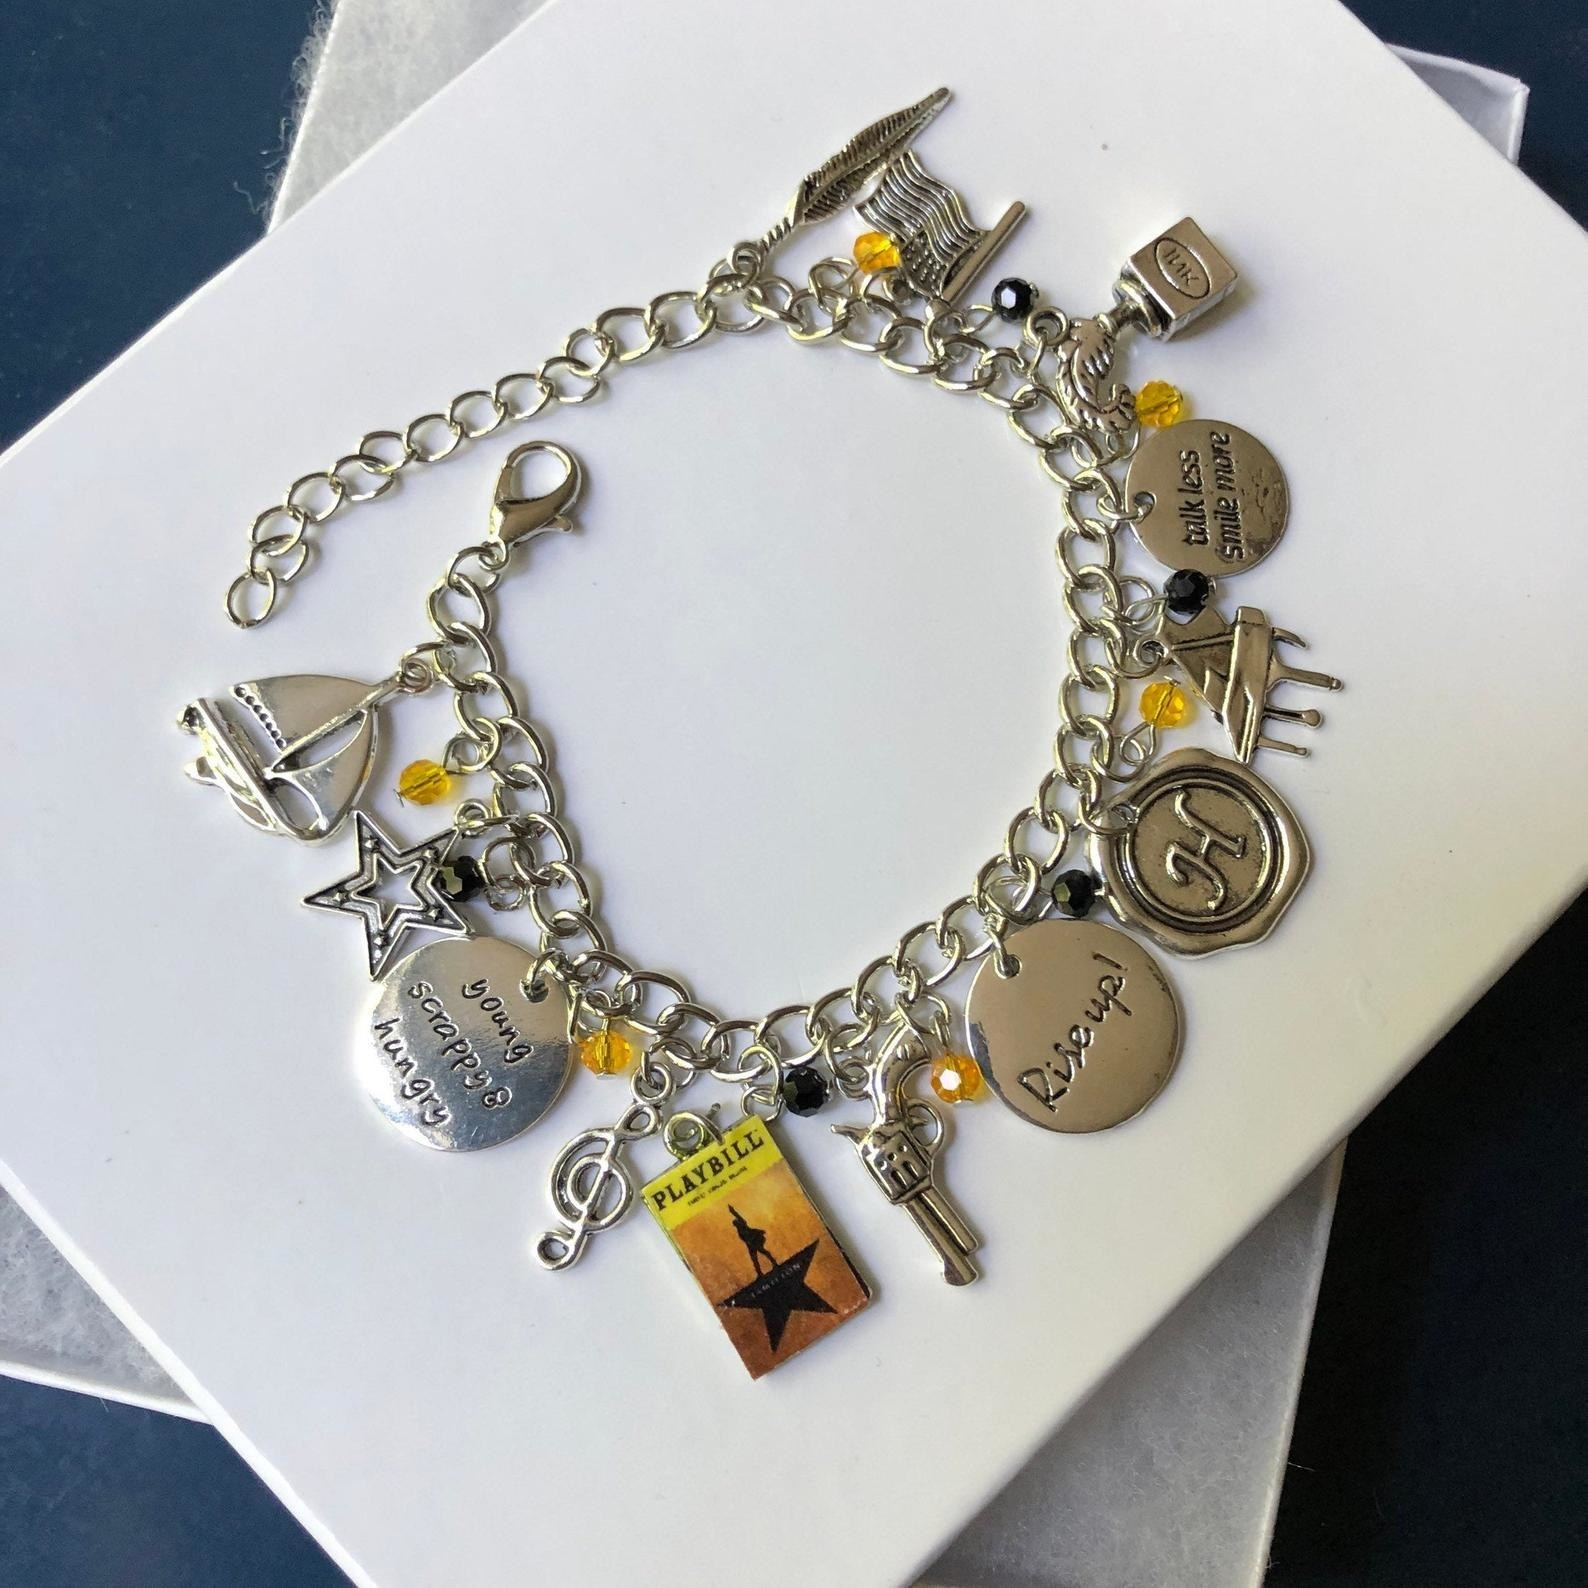 A bracelet with Hamilton-related charms and quotes on it